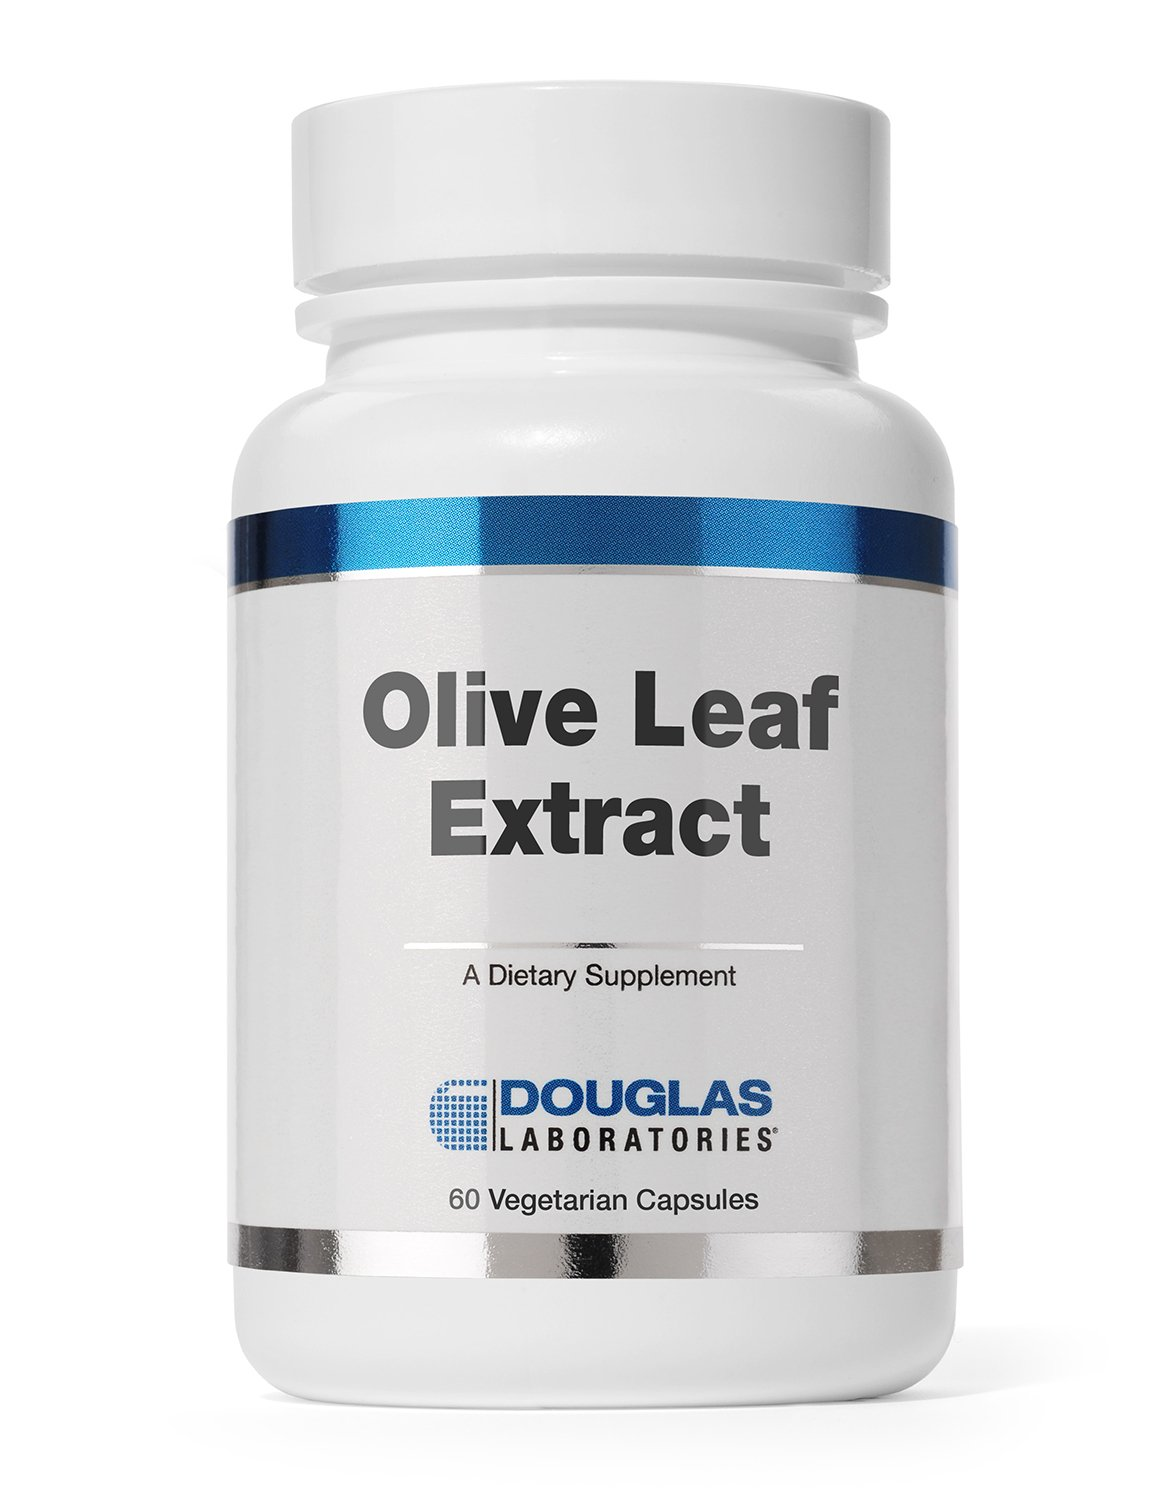 Douglas Laboratories - Olive Leaf Extract - Olive Leaf for Microbial Support and Heart Health* - 120 Capsules